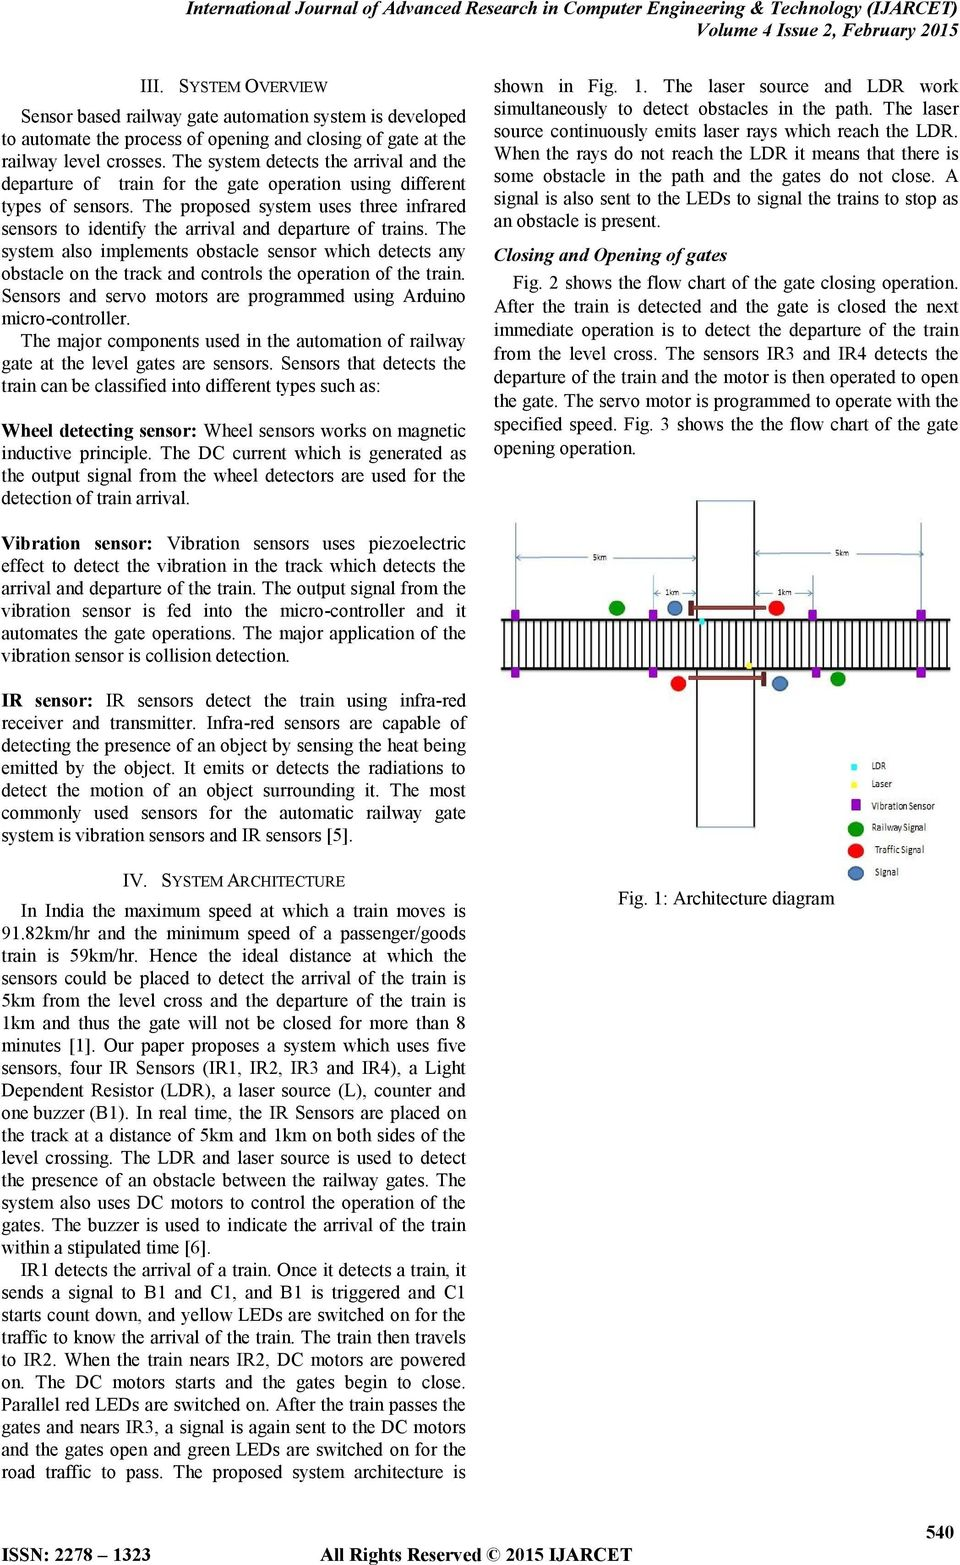 Sensor Based Automatic Control Of Railway Gates Karthik Auto Gate Wiring Diagram Malaysia The Proposed System Uses Three Infrared Sensors To Identify Arrival And Departure Trains